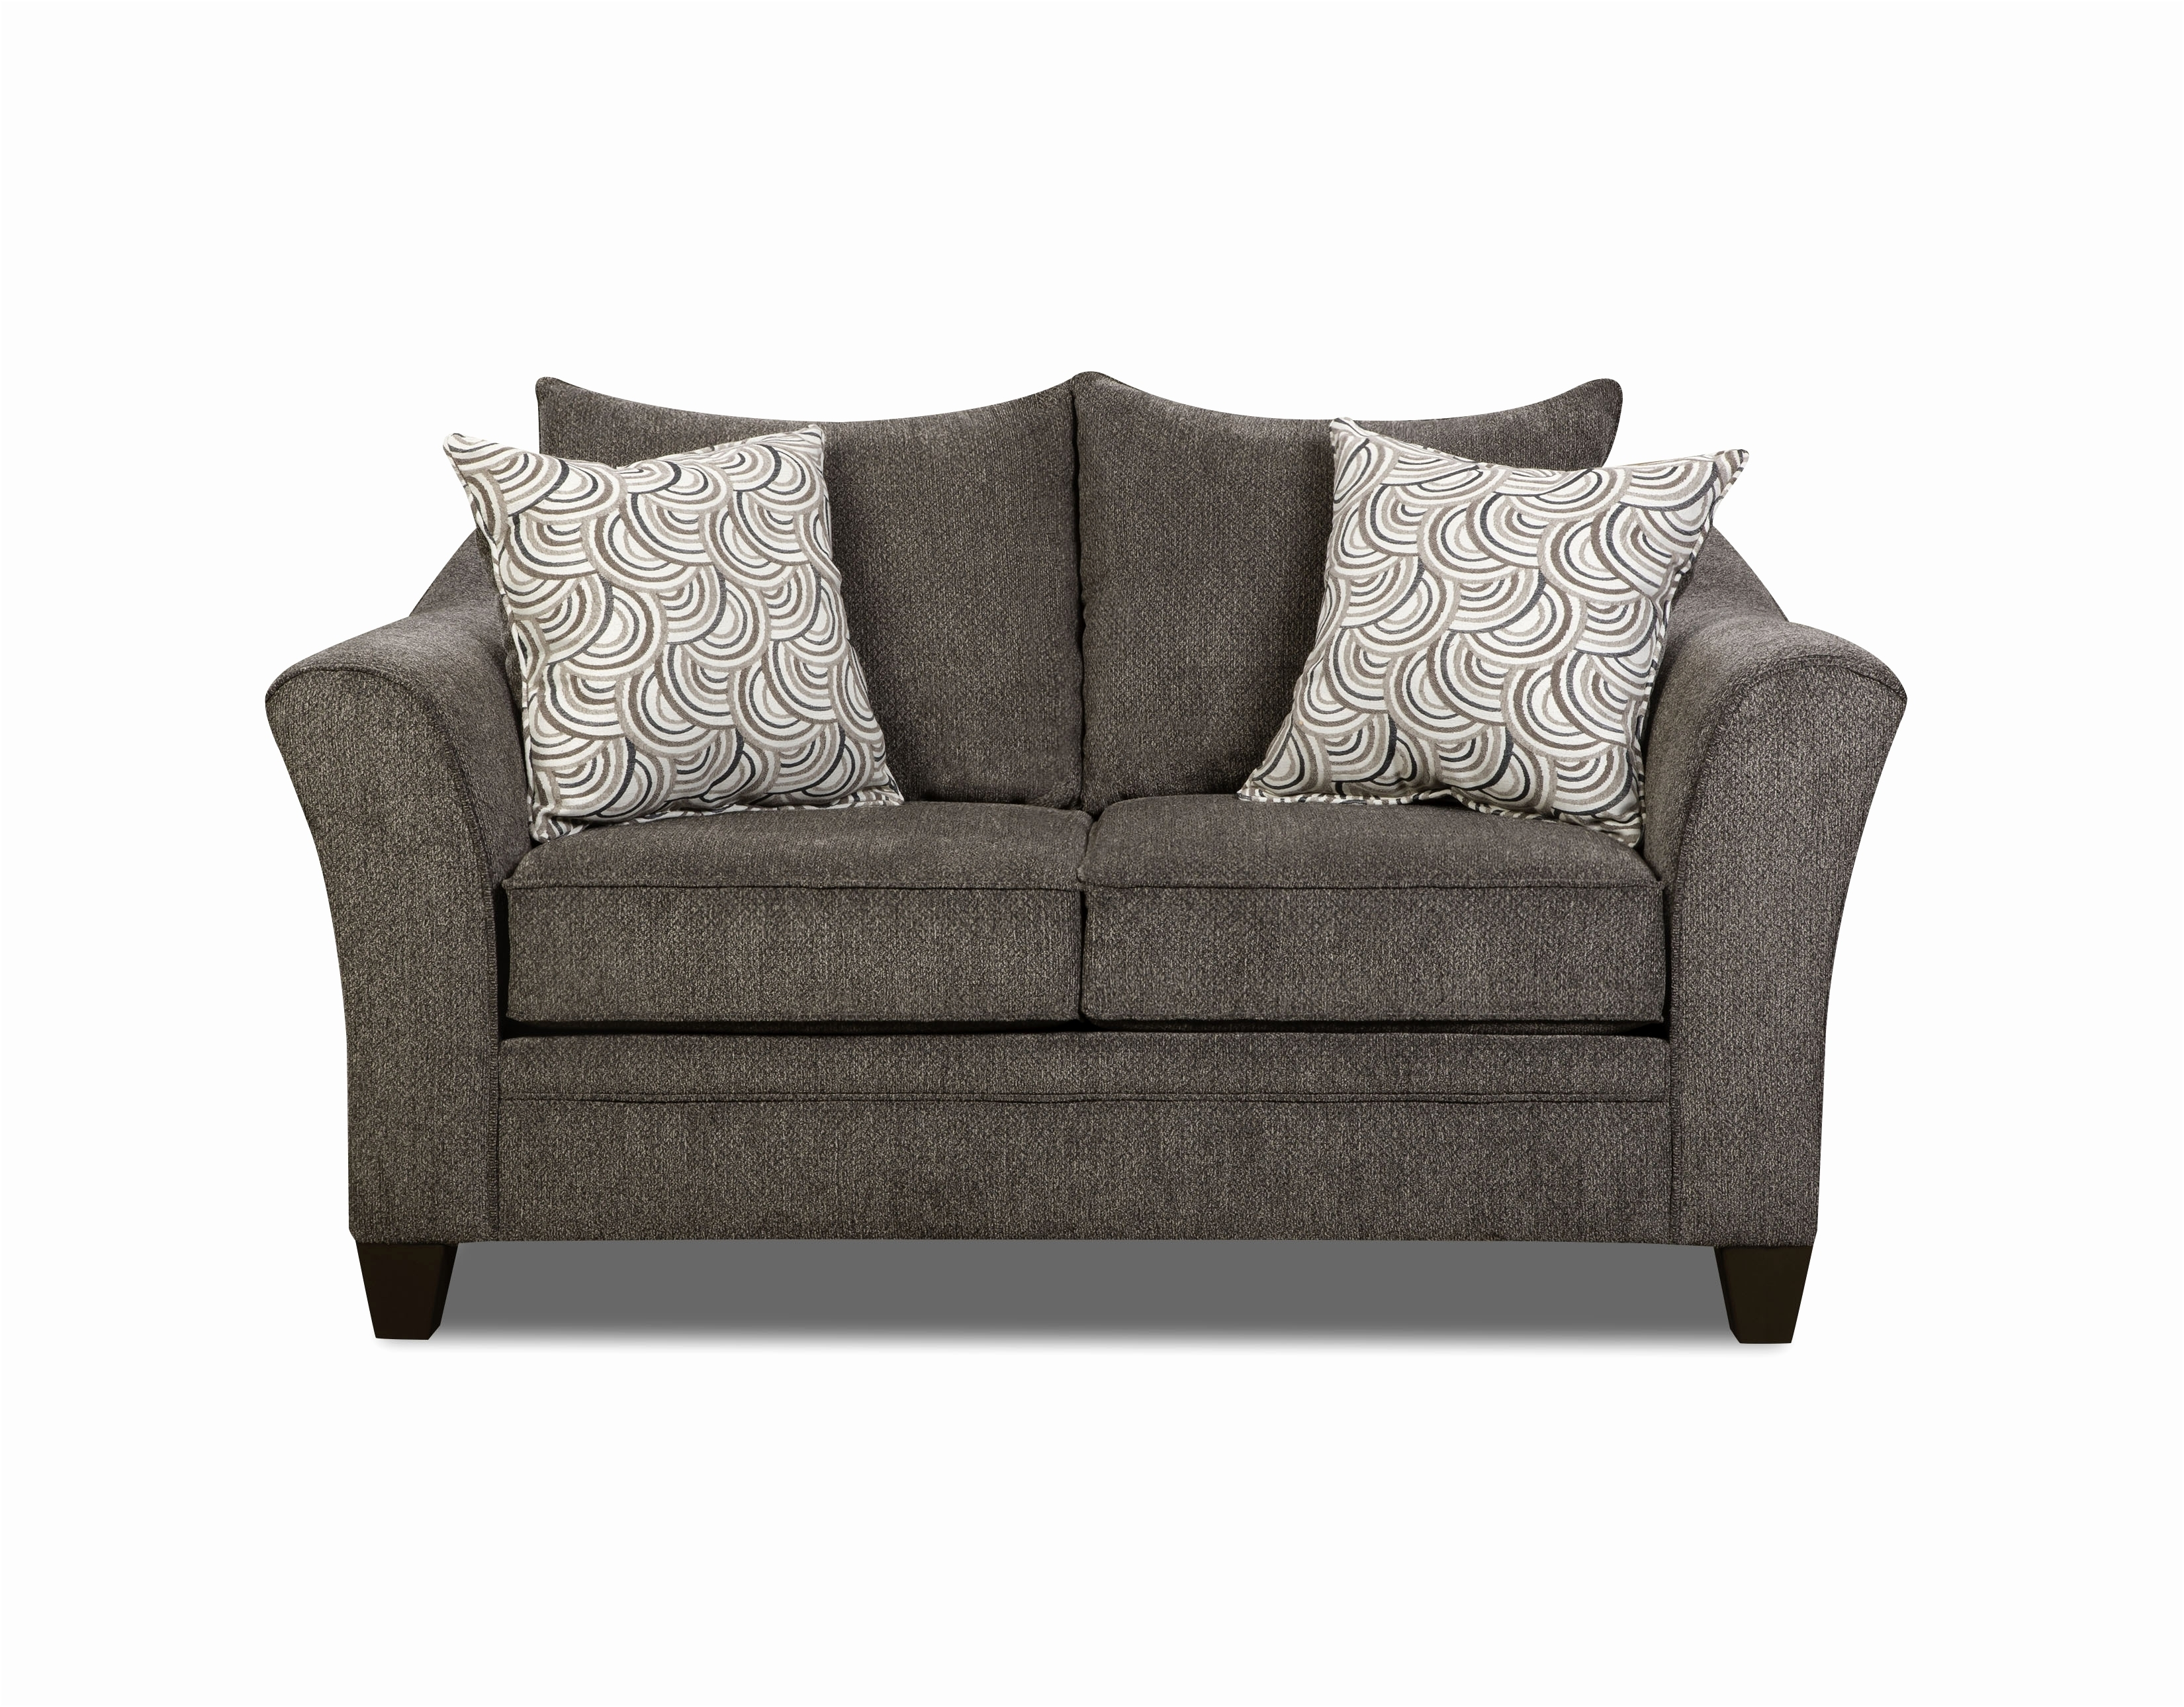 Fresh Sears Leather Sofa New – Intuisiblog For Sectional Sofas At Sears (View 4 of 15)